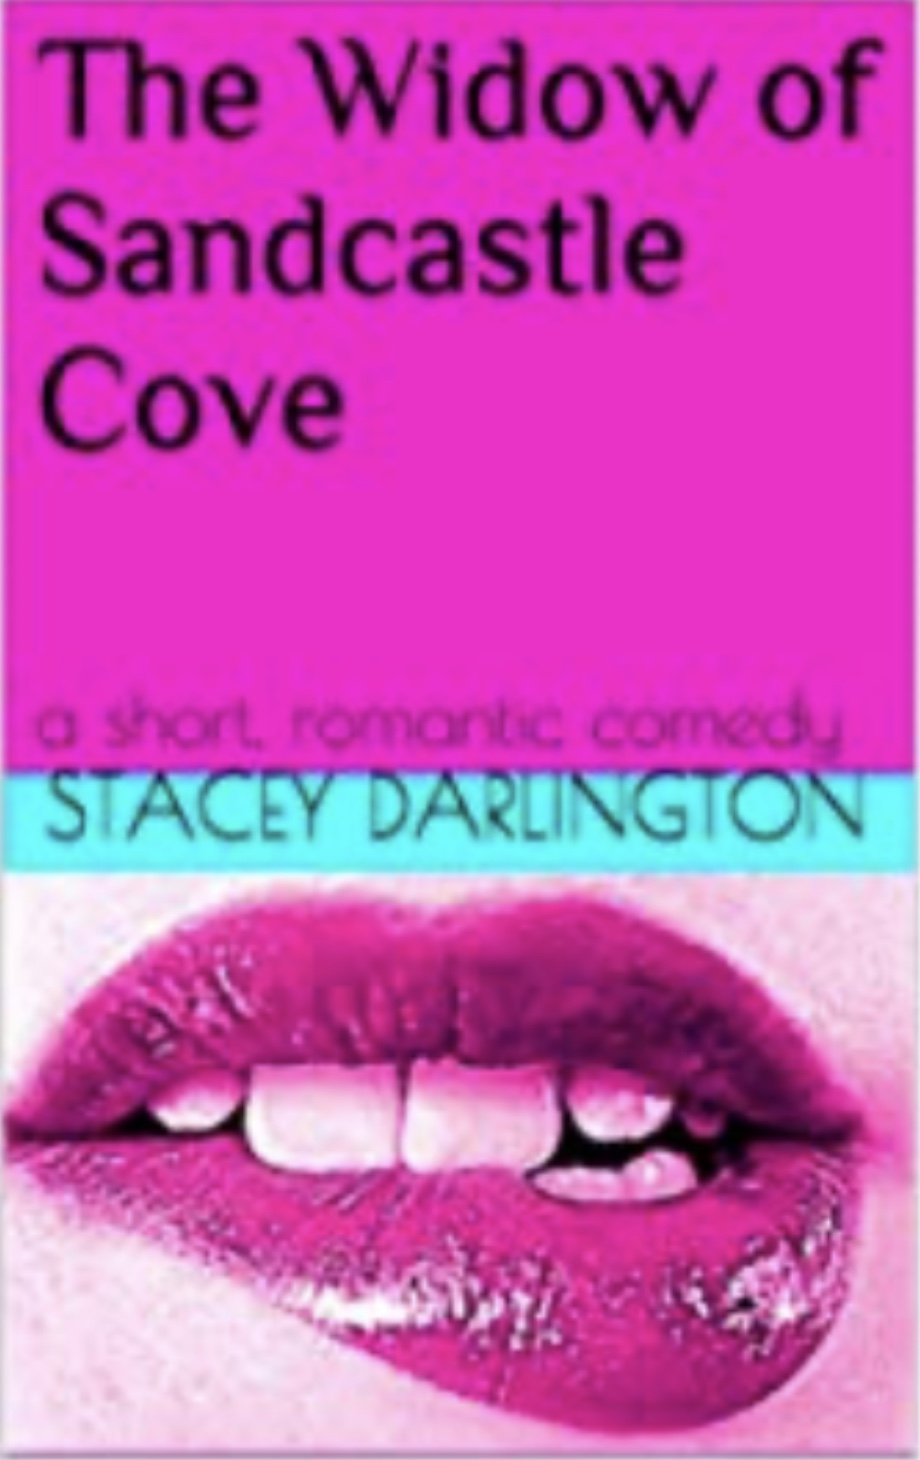 The Widow of Sandcastle Cove